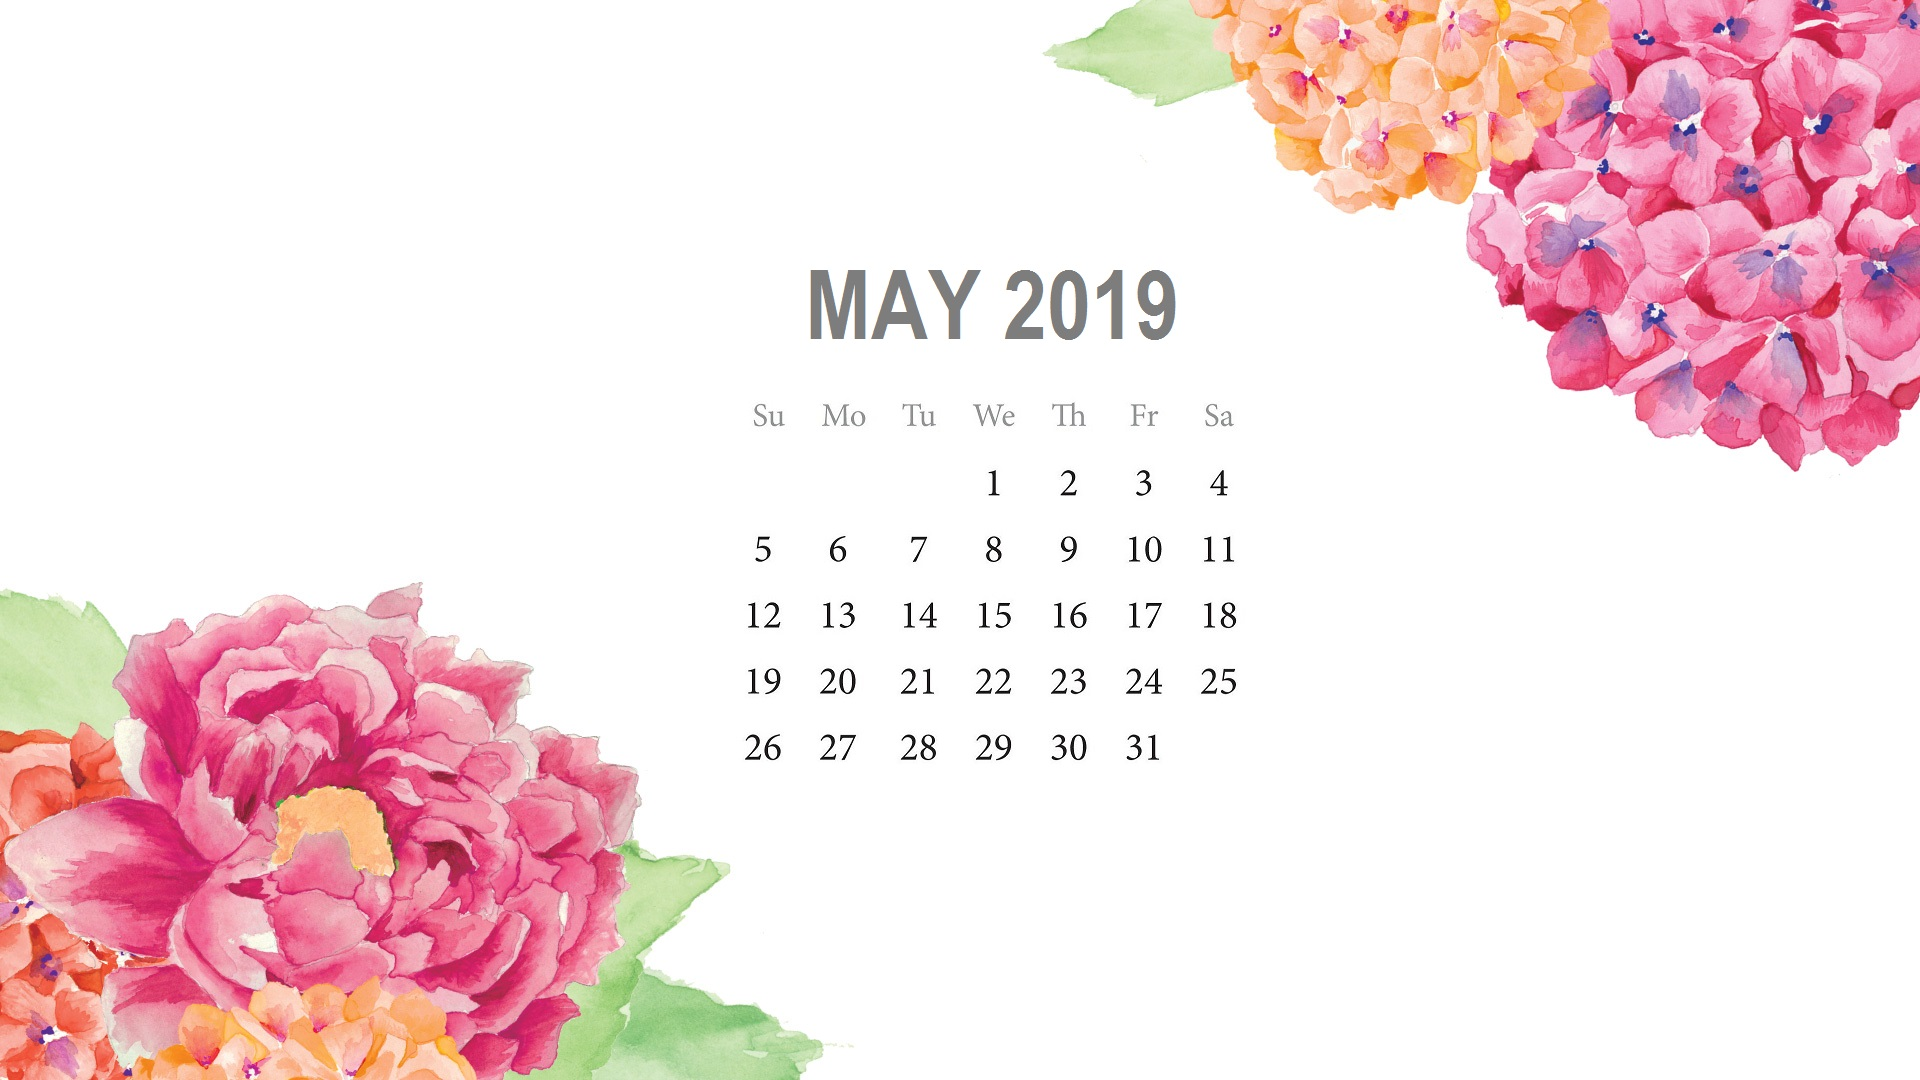 May 2019 Desktop Background Calendar